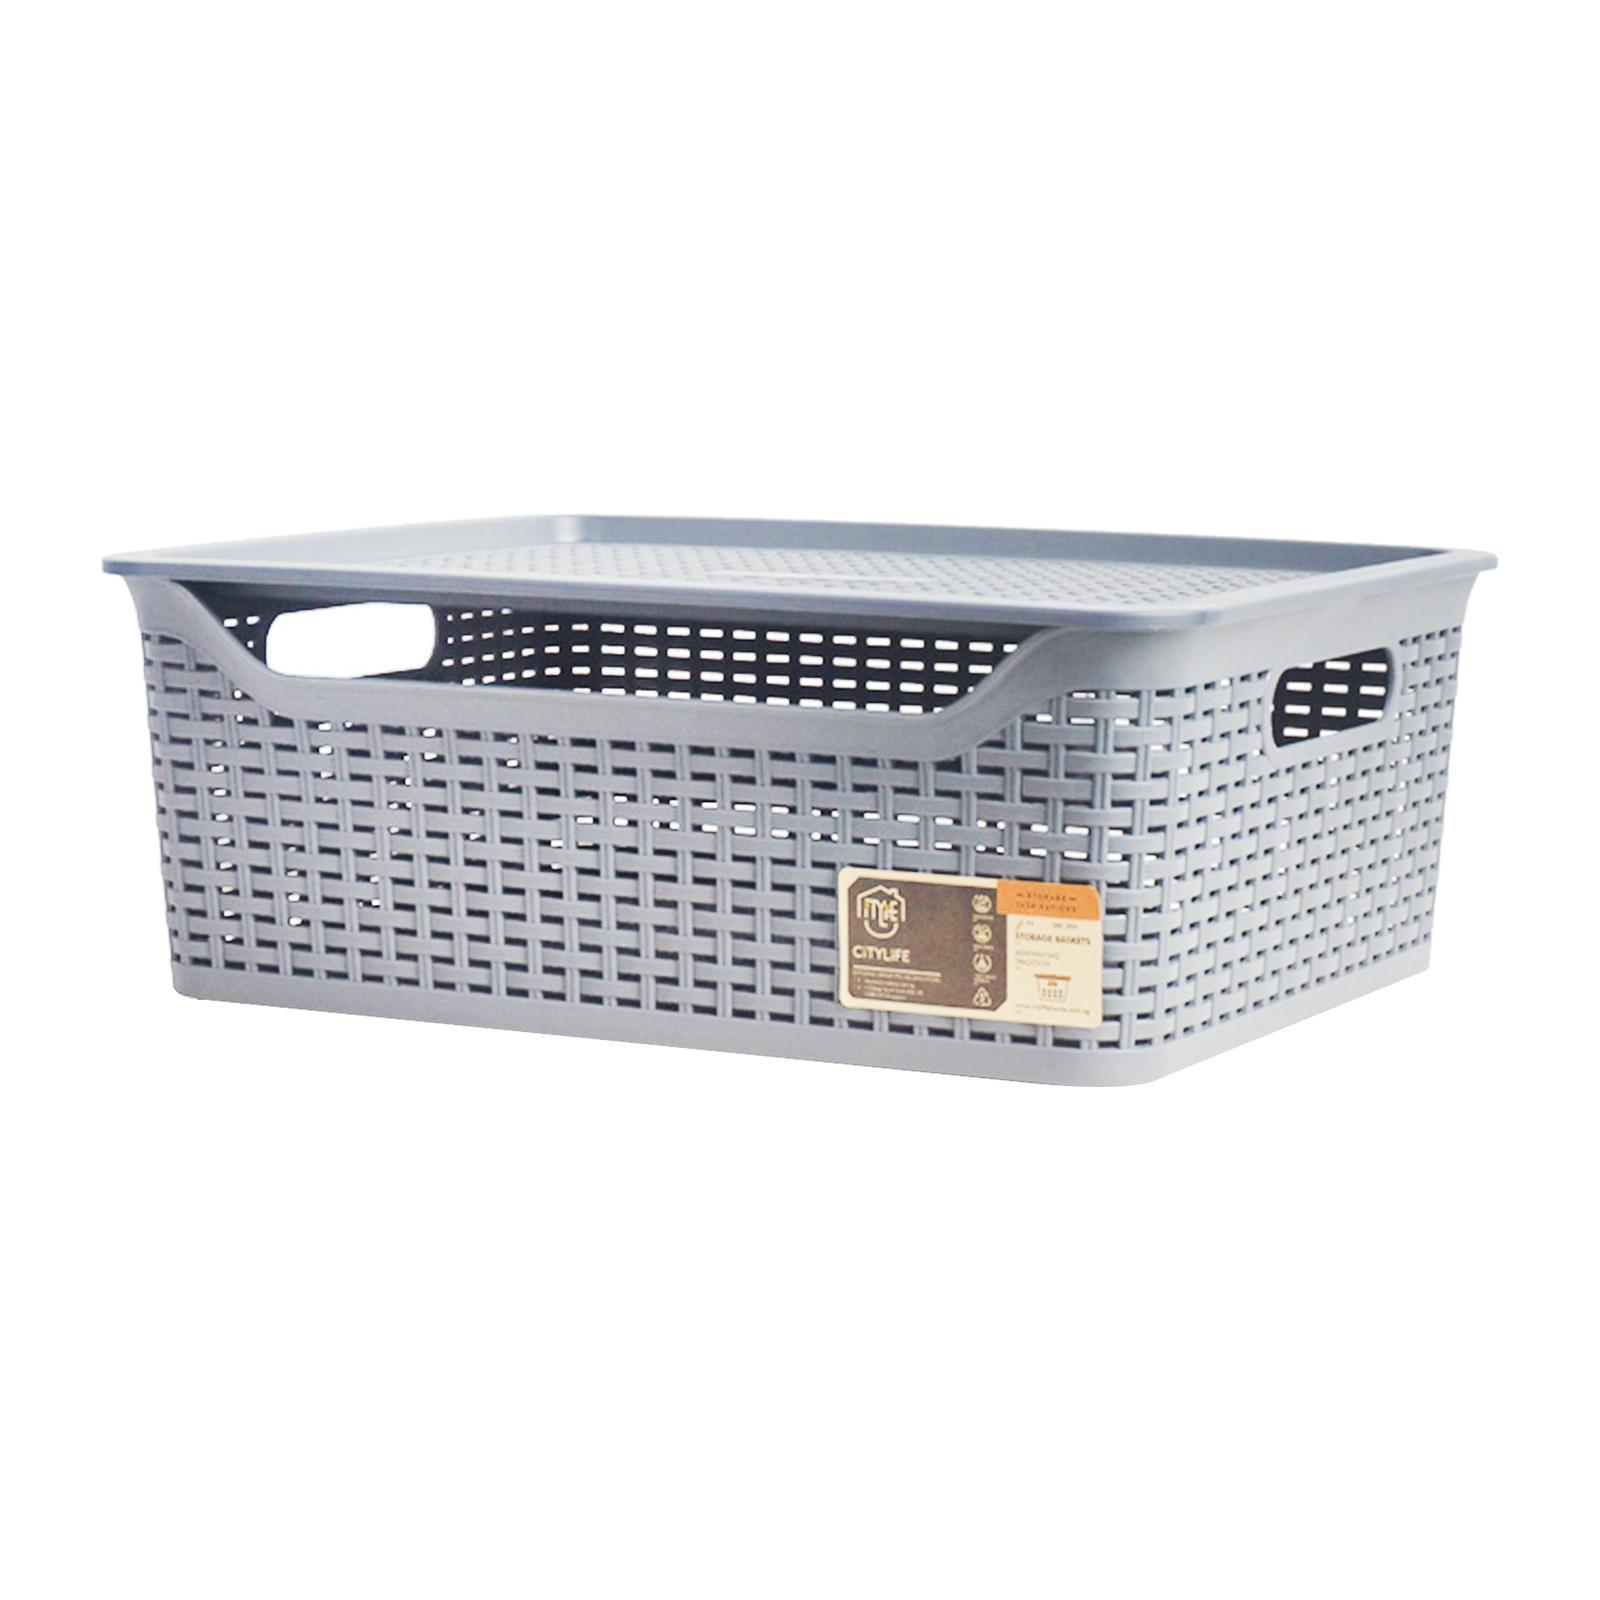 CITYLIFE Storage Basket With Lid